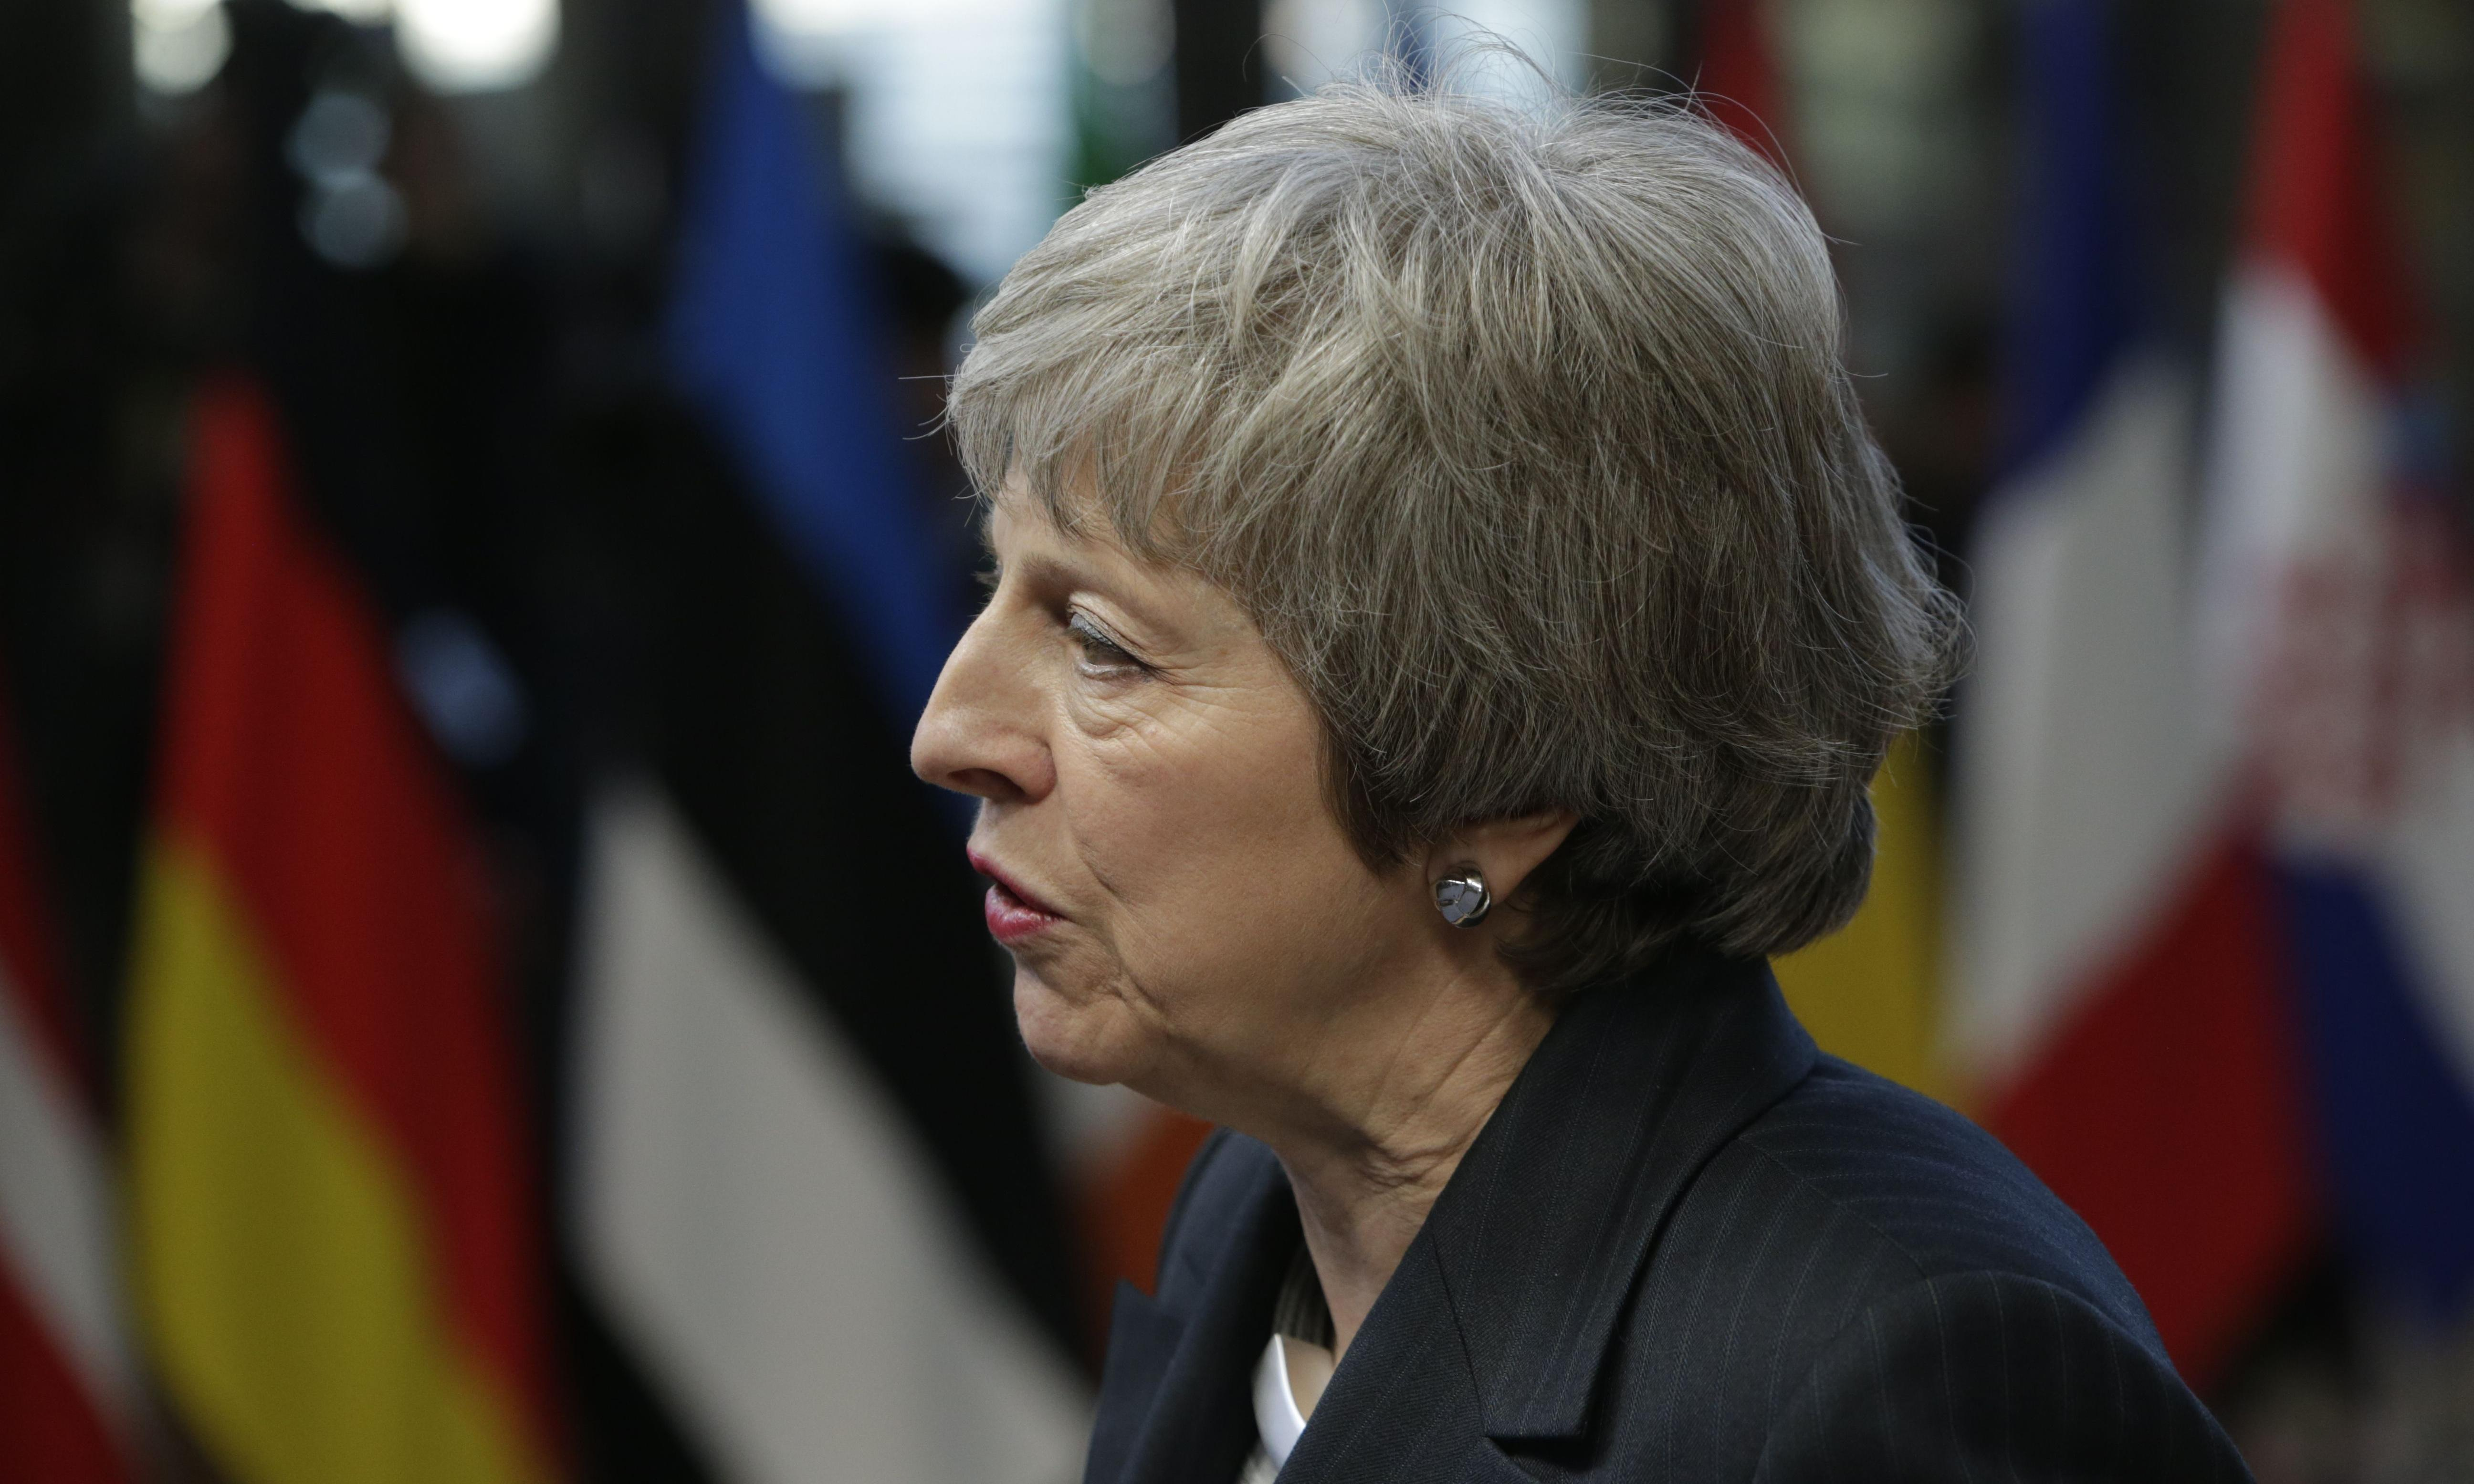 EU leaders reject May's idea to salvage her Brexit deal